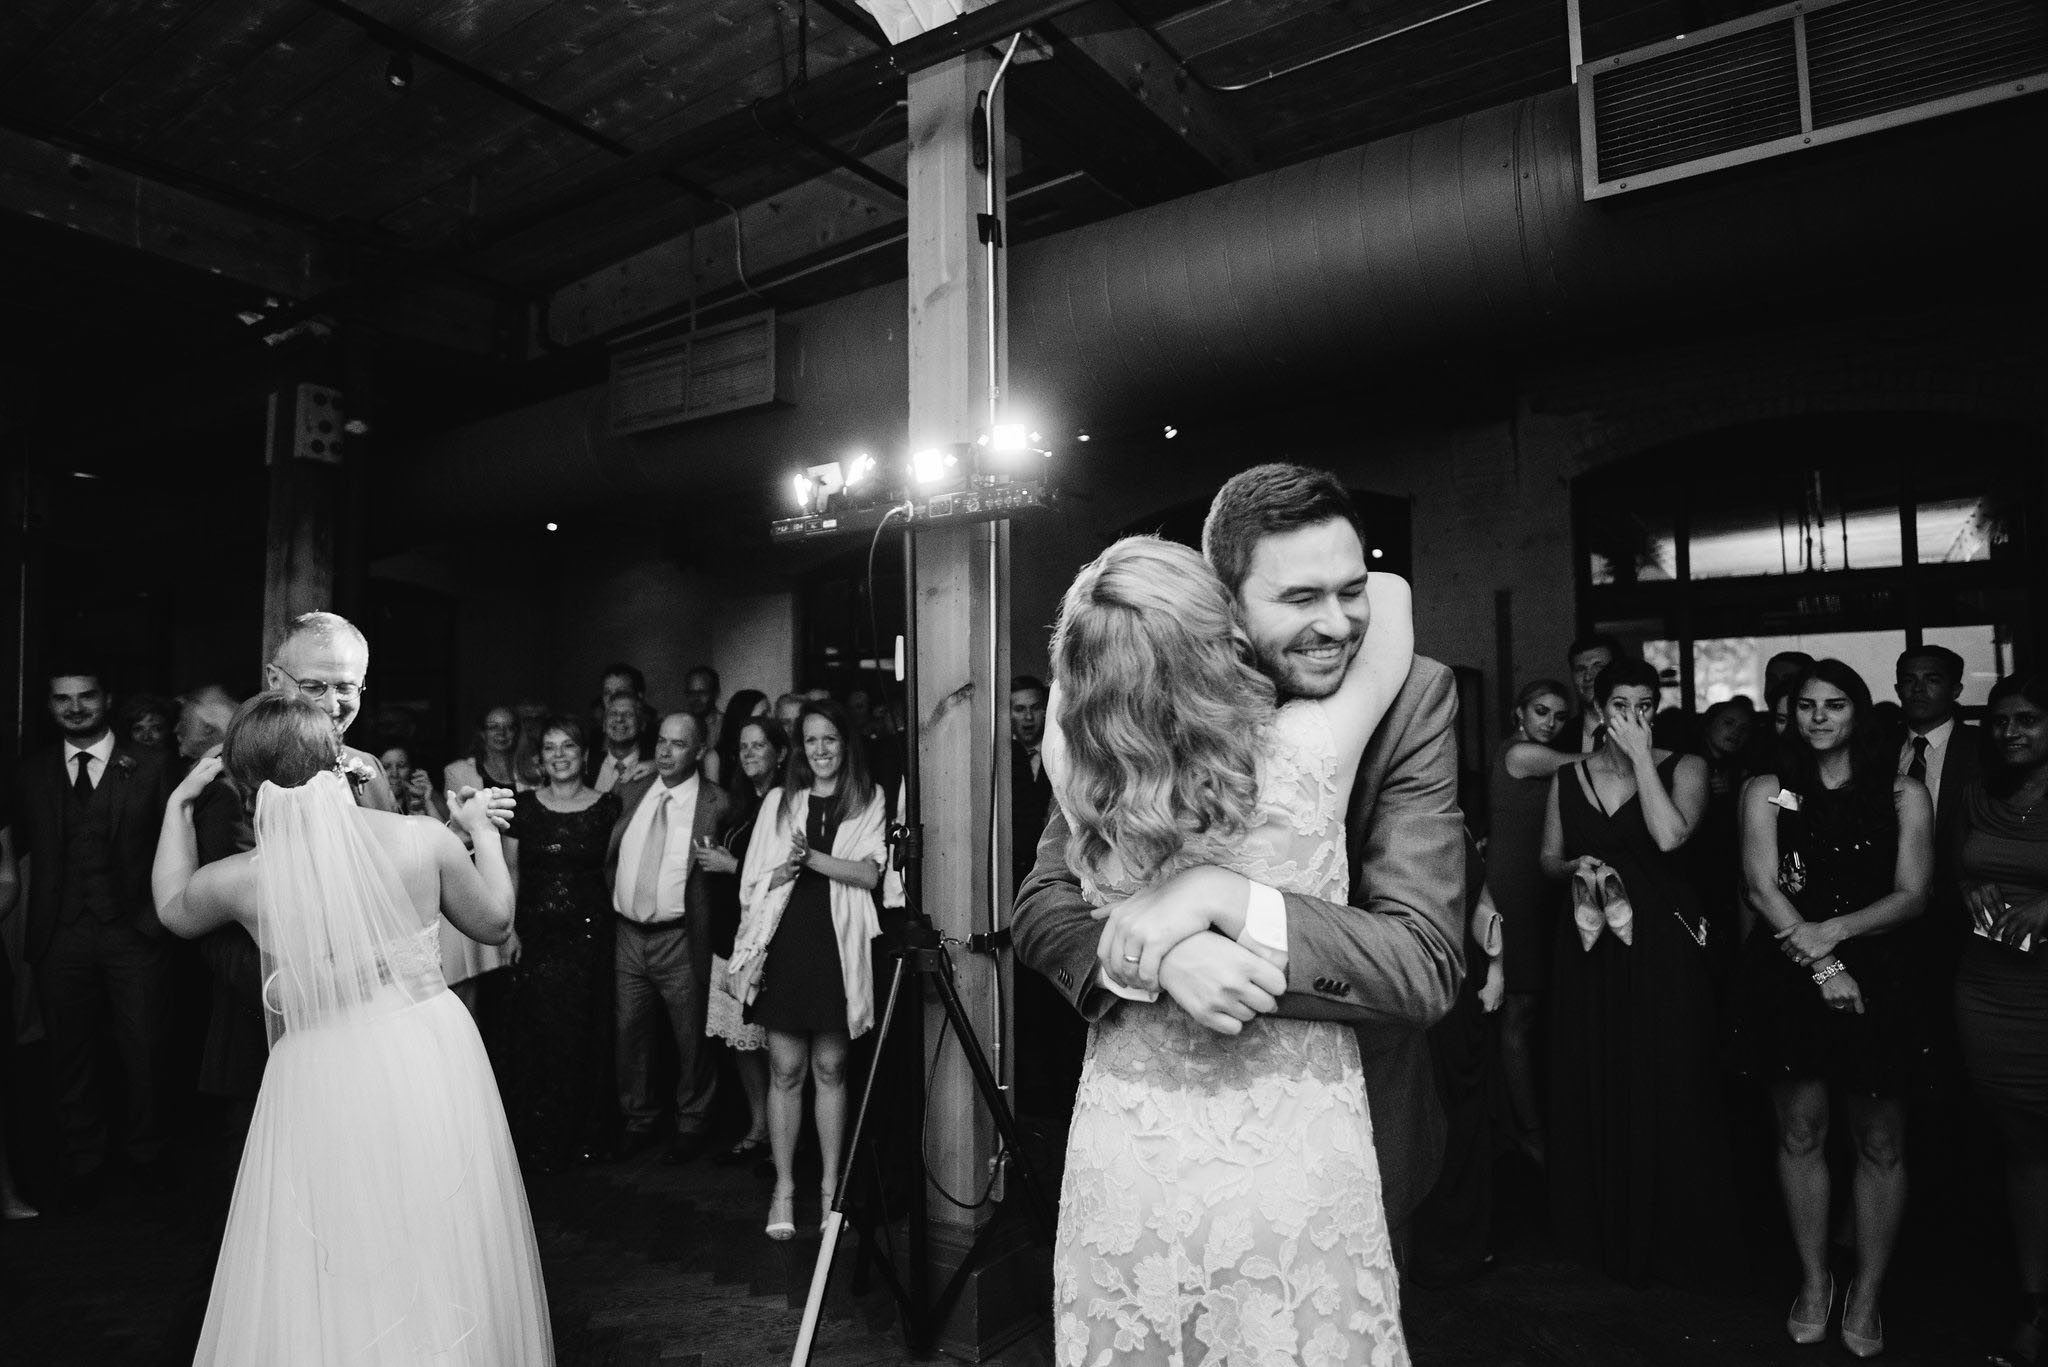 Storys Building Wedding Toronto | Olive Photography